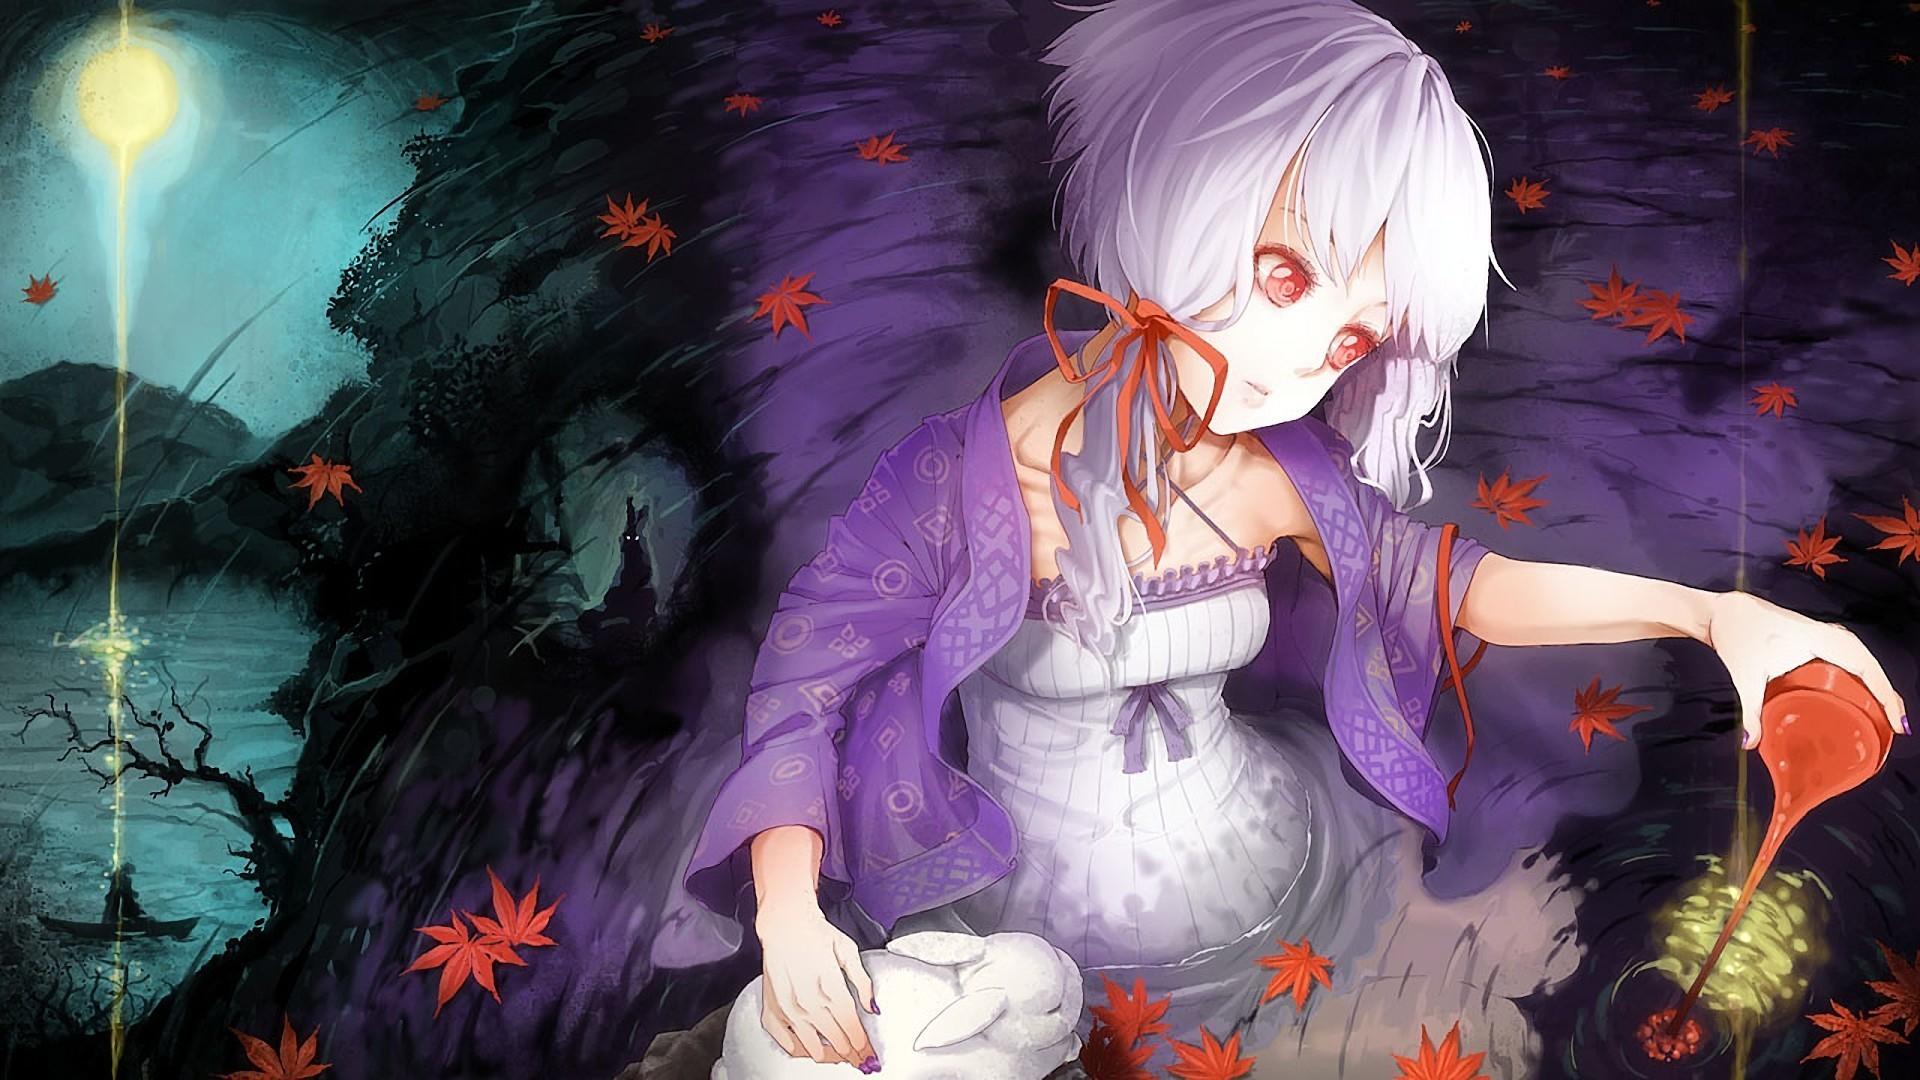 Girl water rabbit leaf moon abstraction anime original wallpaper 1920x1080 38101 wallpaperup